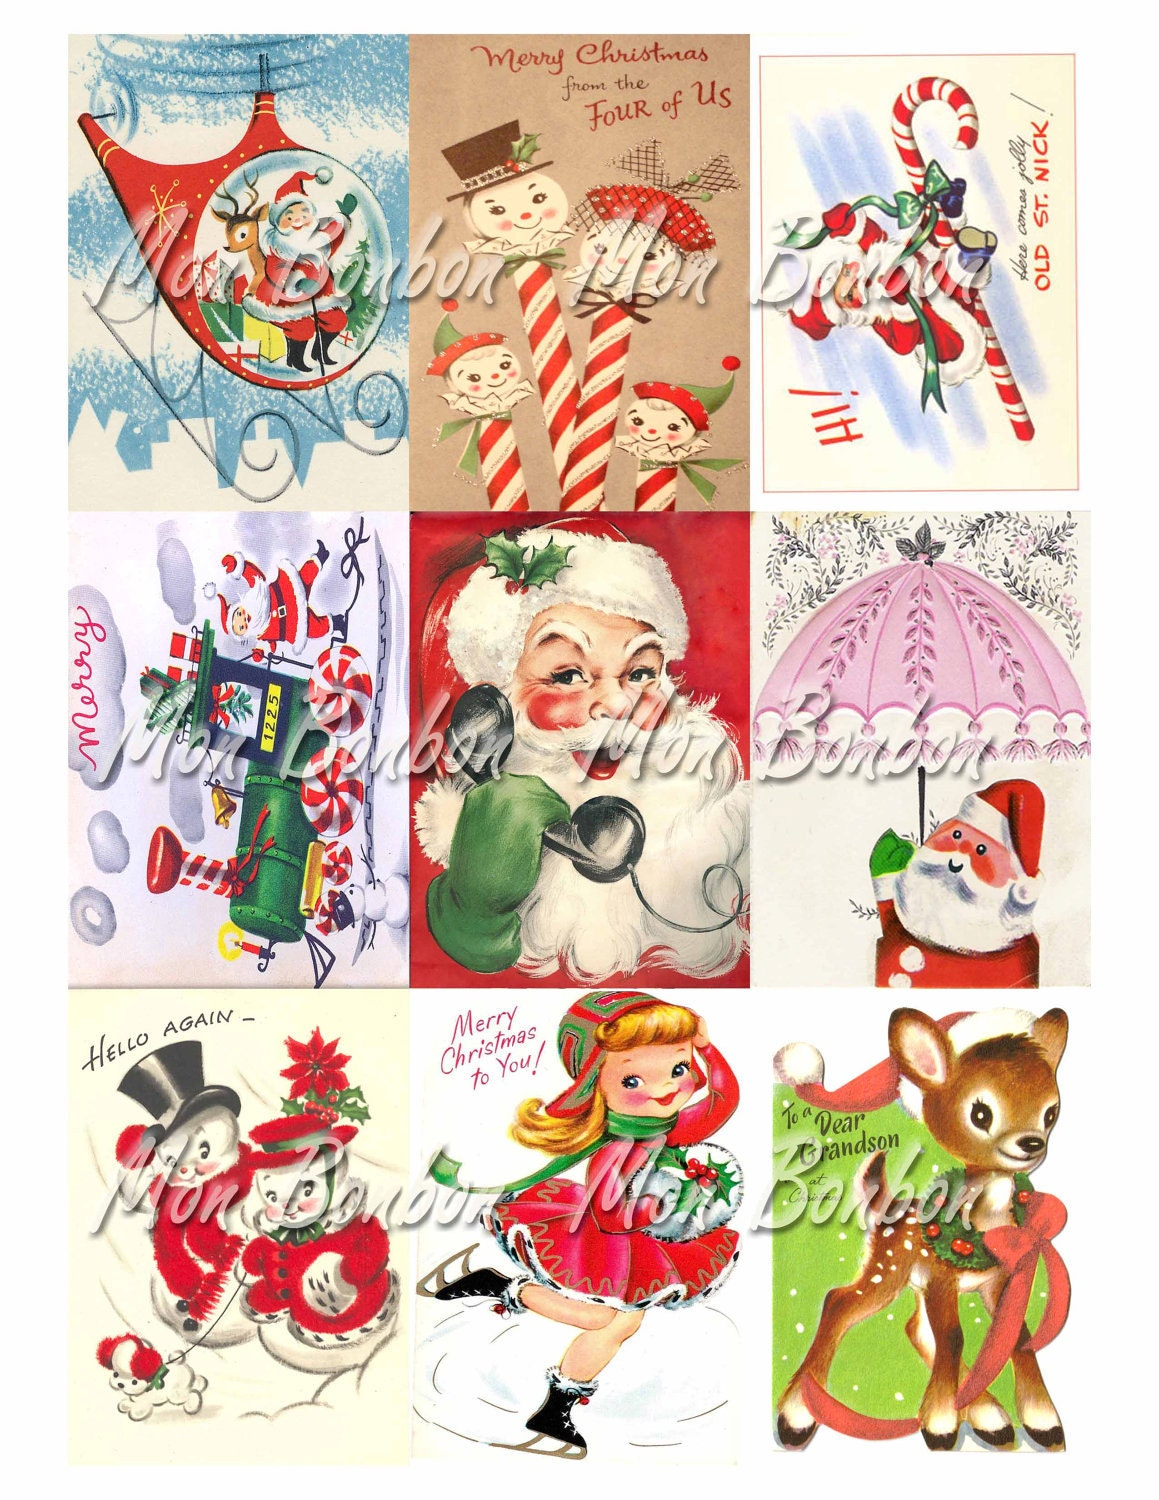 Digital Collage Sheet of Vintage Retro Christmas Card Images | Etsy